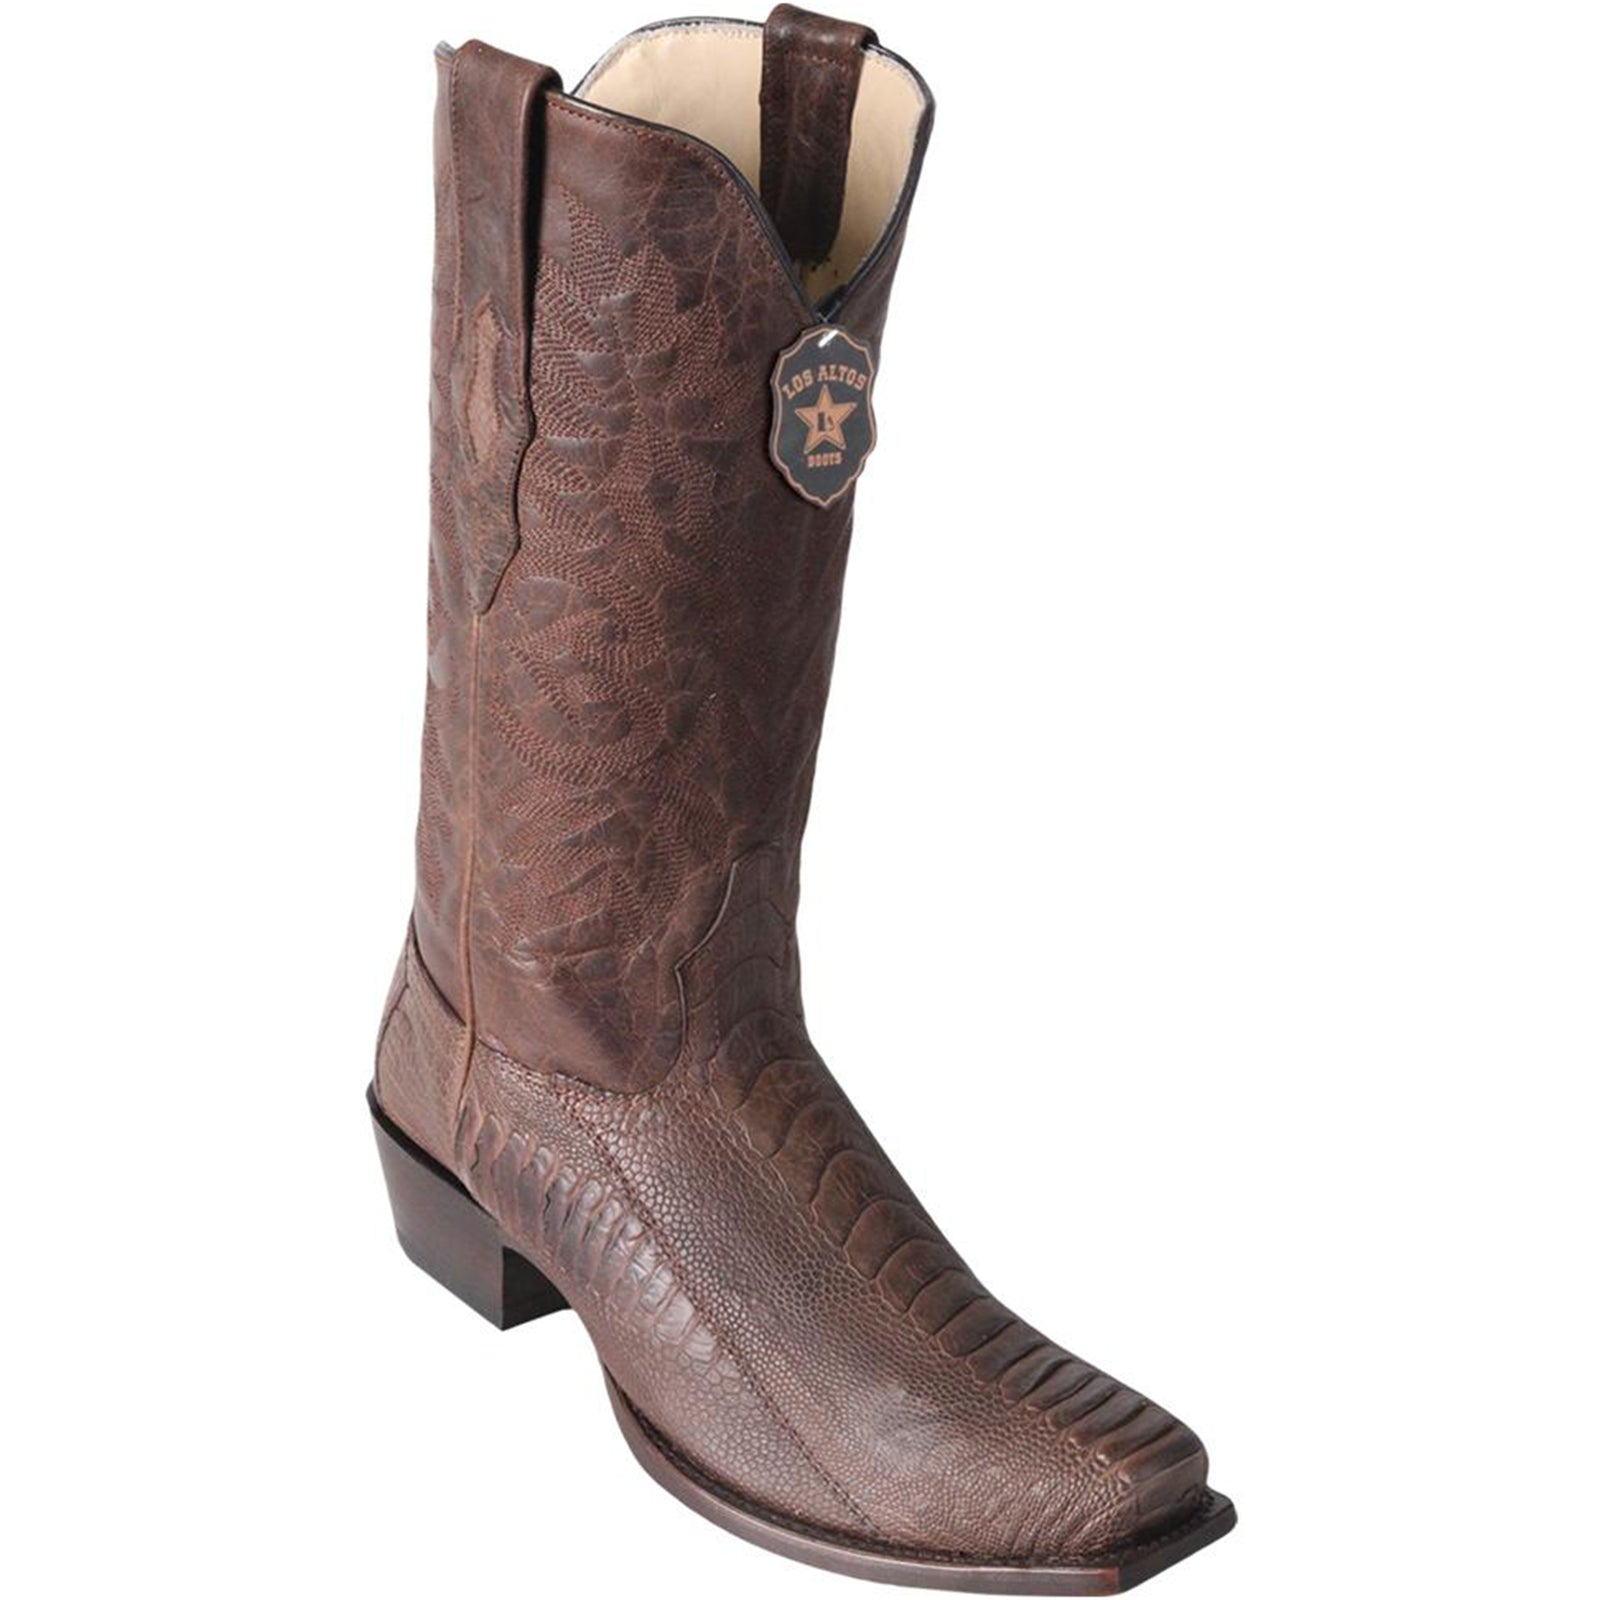 Los Altos Men's Brown Ostrich Leg Square 7-Toe Cowboy Boots - Greasy Finish